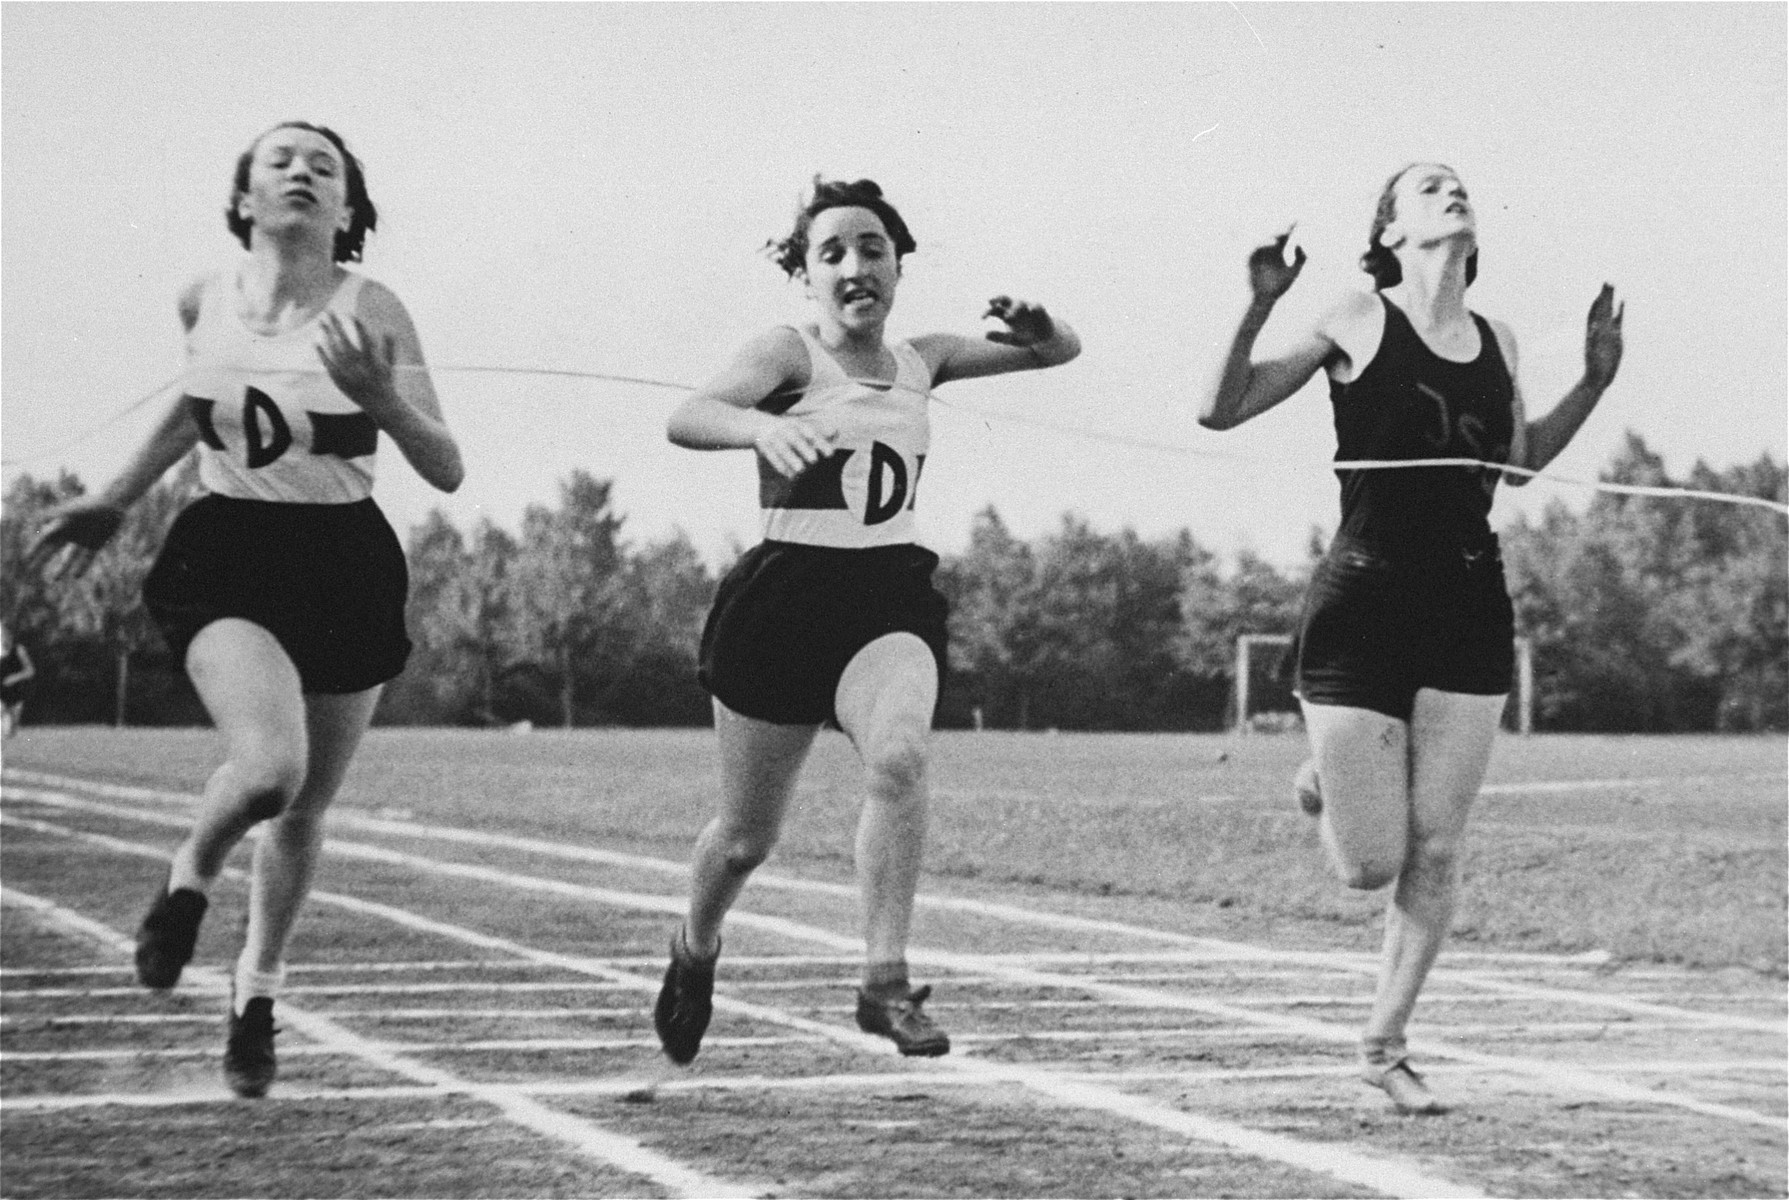 The donor, Ilse Dahl (left), competes against two other runners in the 100 meter race at a sporting event in Berlin.